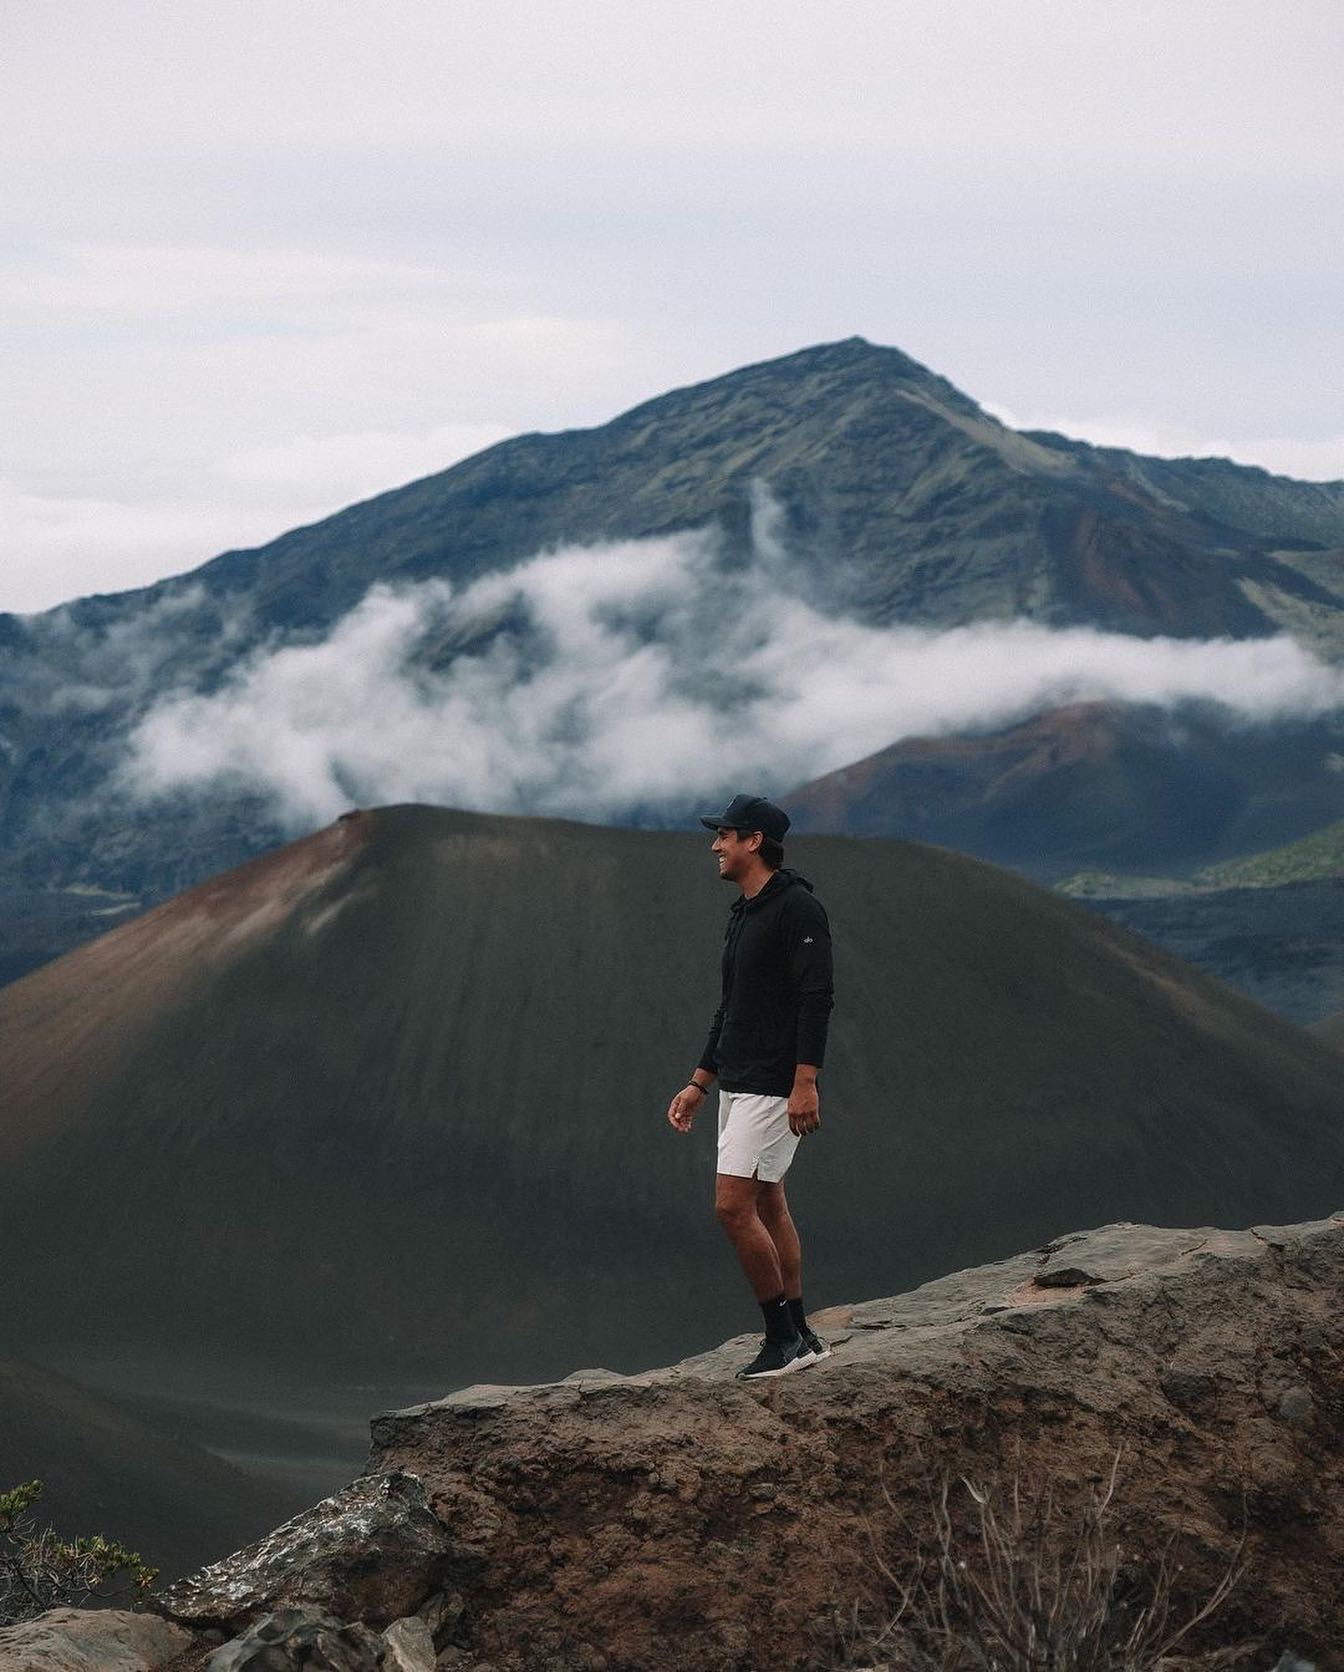 @chris_avey wearing the Idol Hooded Runner while hiking through a cloudy mountain range.